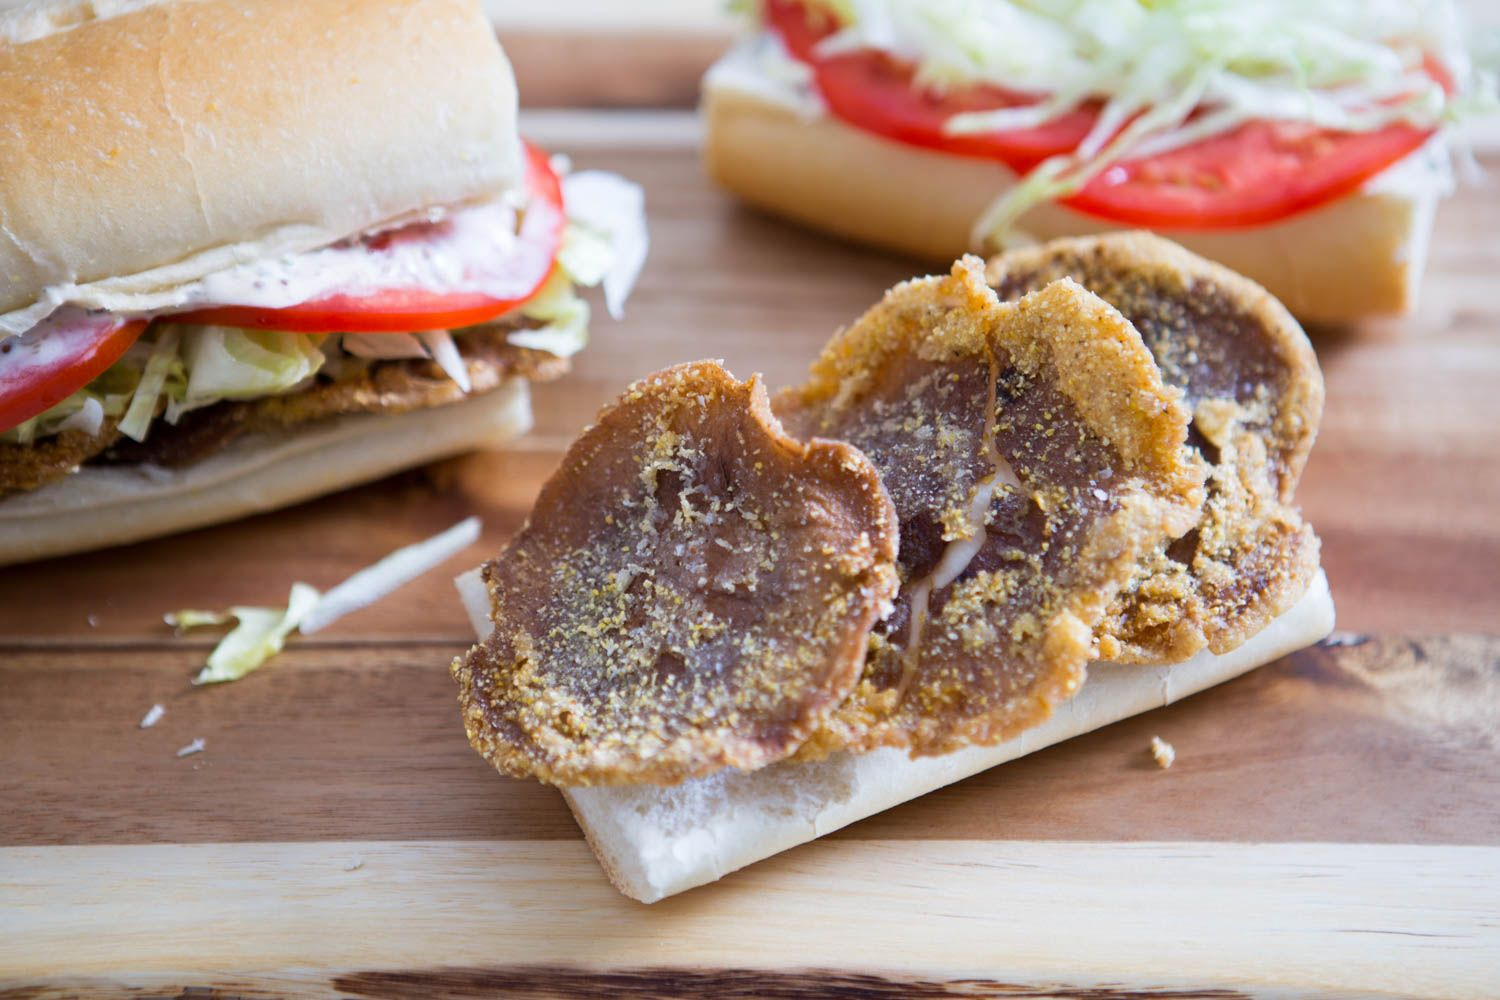 Swap meat for fried shiitake mushrooms in this vegetarian po'boy.